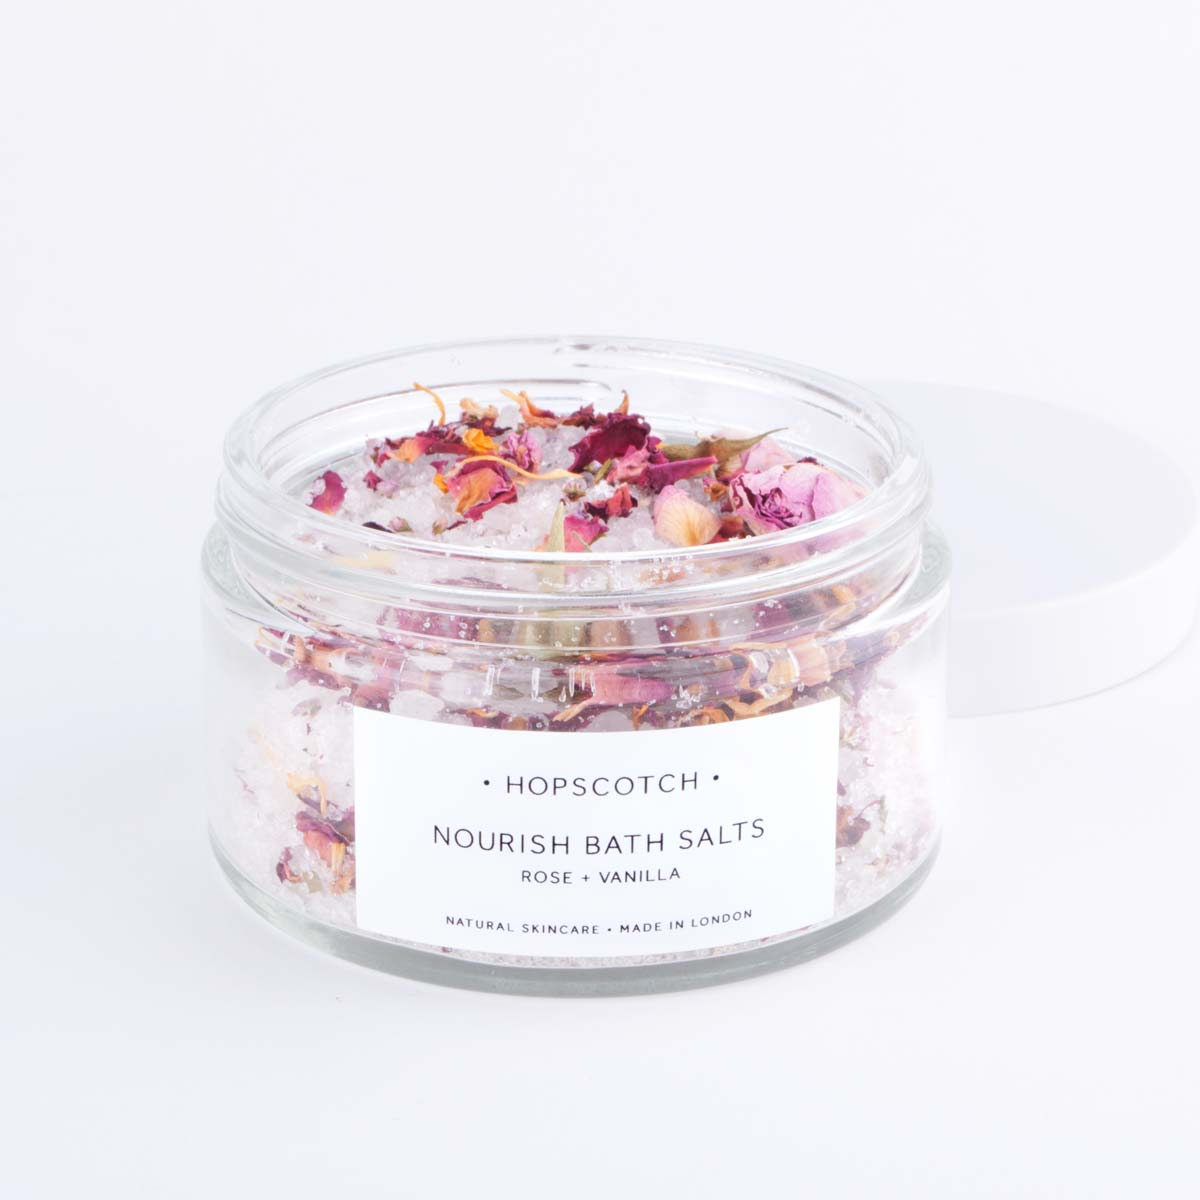 hopscotch nourish bath salts